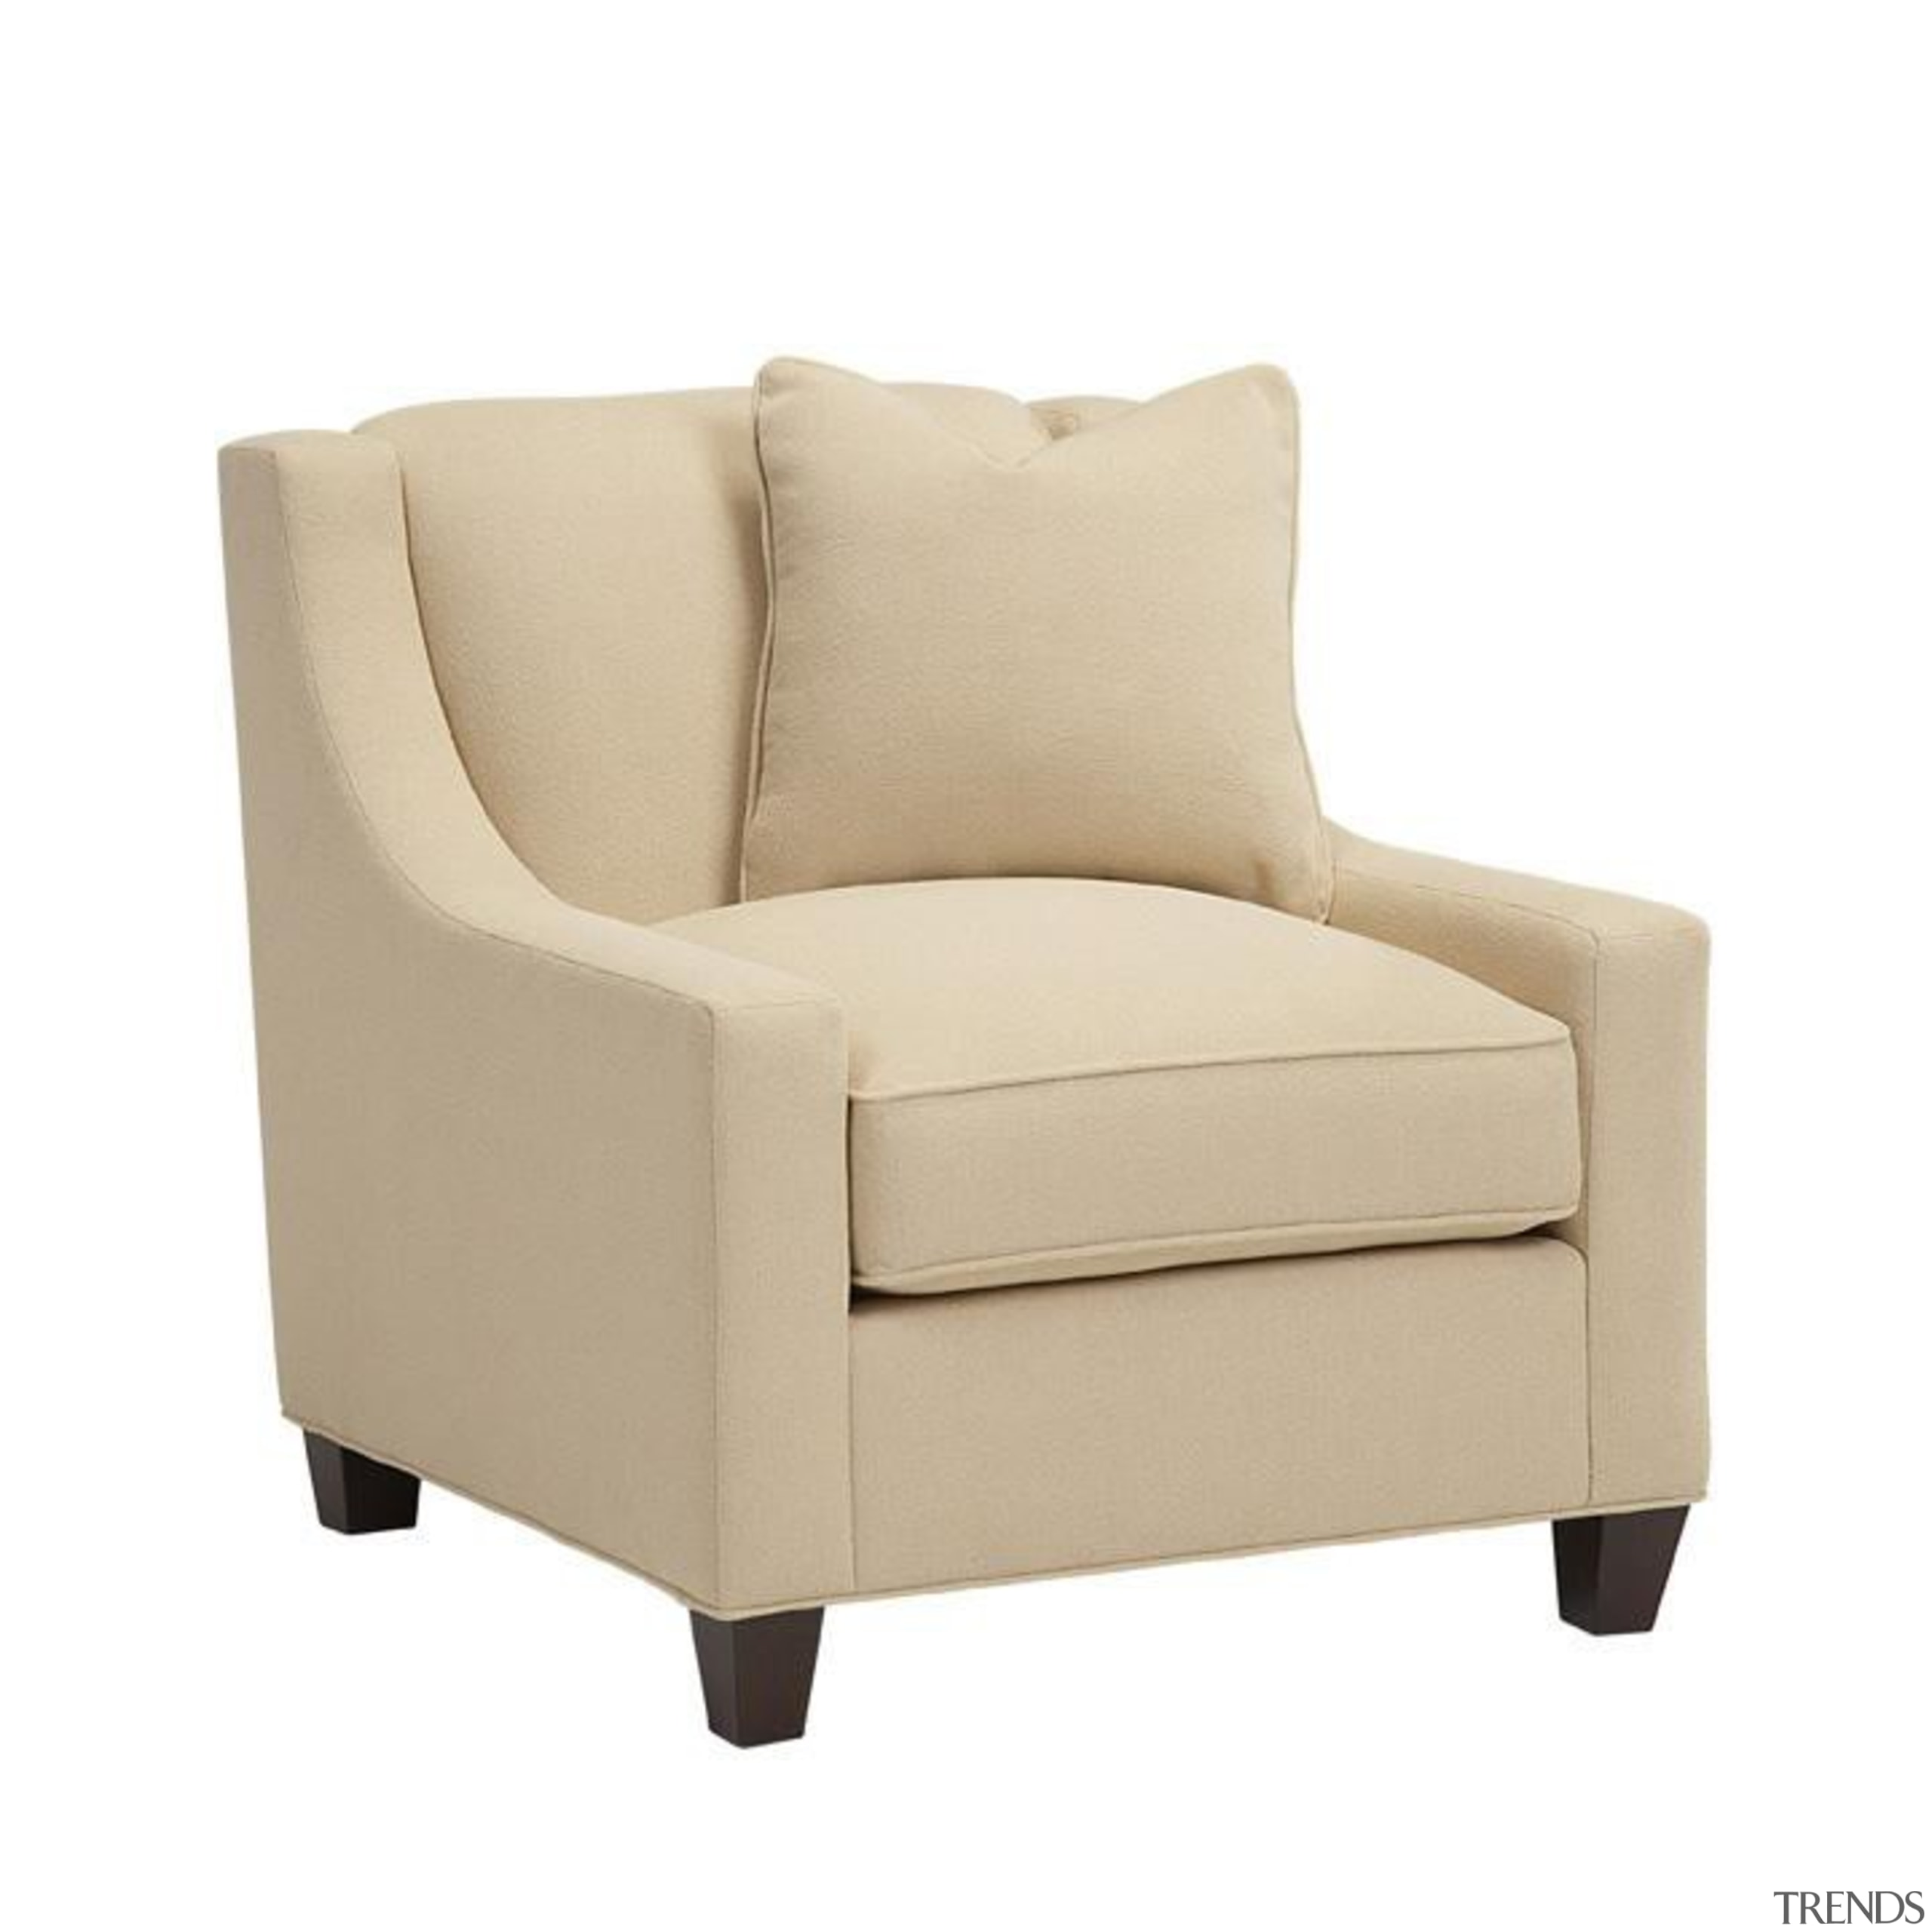 Designed to provide Baker style at unprecedented value, angle, beige, chair, club chair, couch, furniture, loveseat, outdoor sofa, product, product design, sleeper chair, white